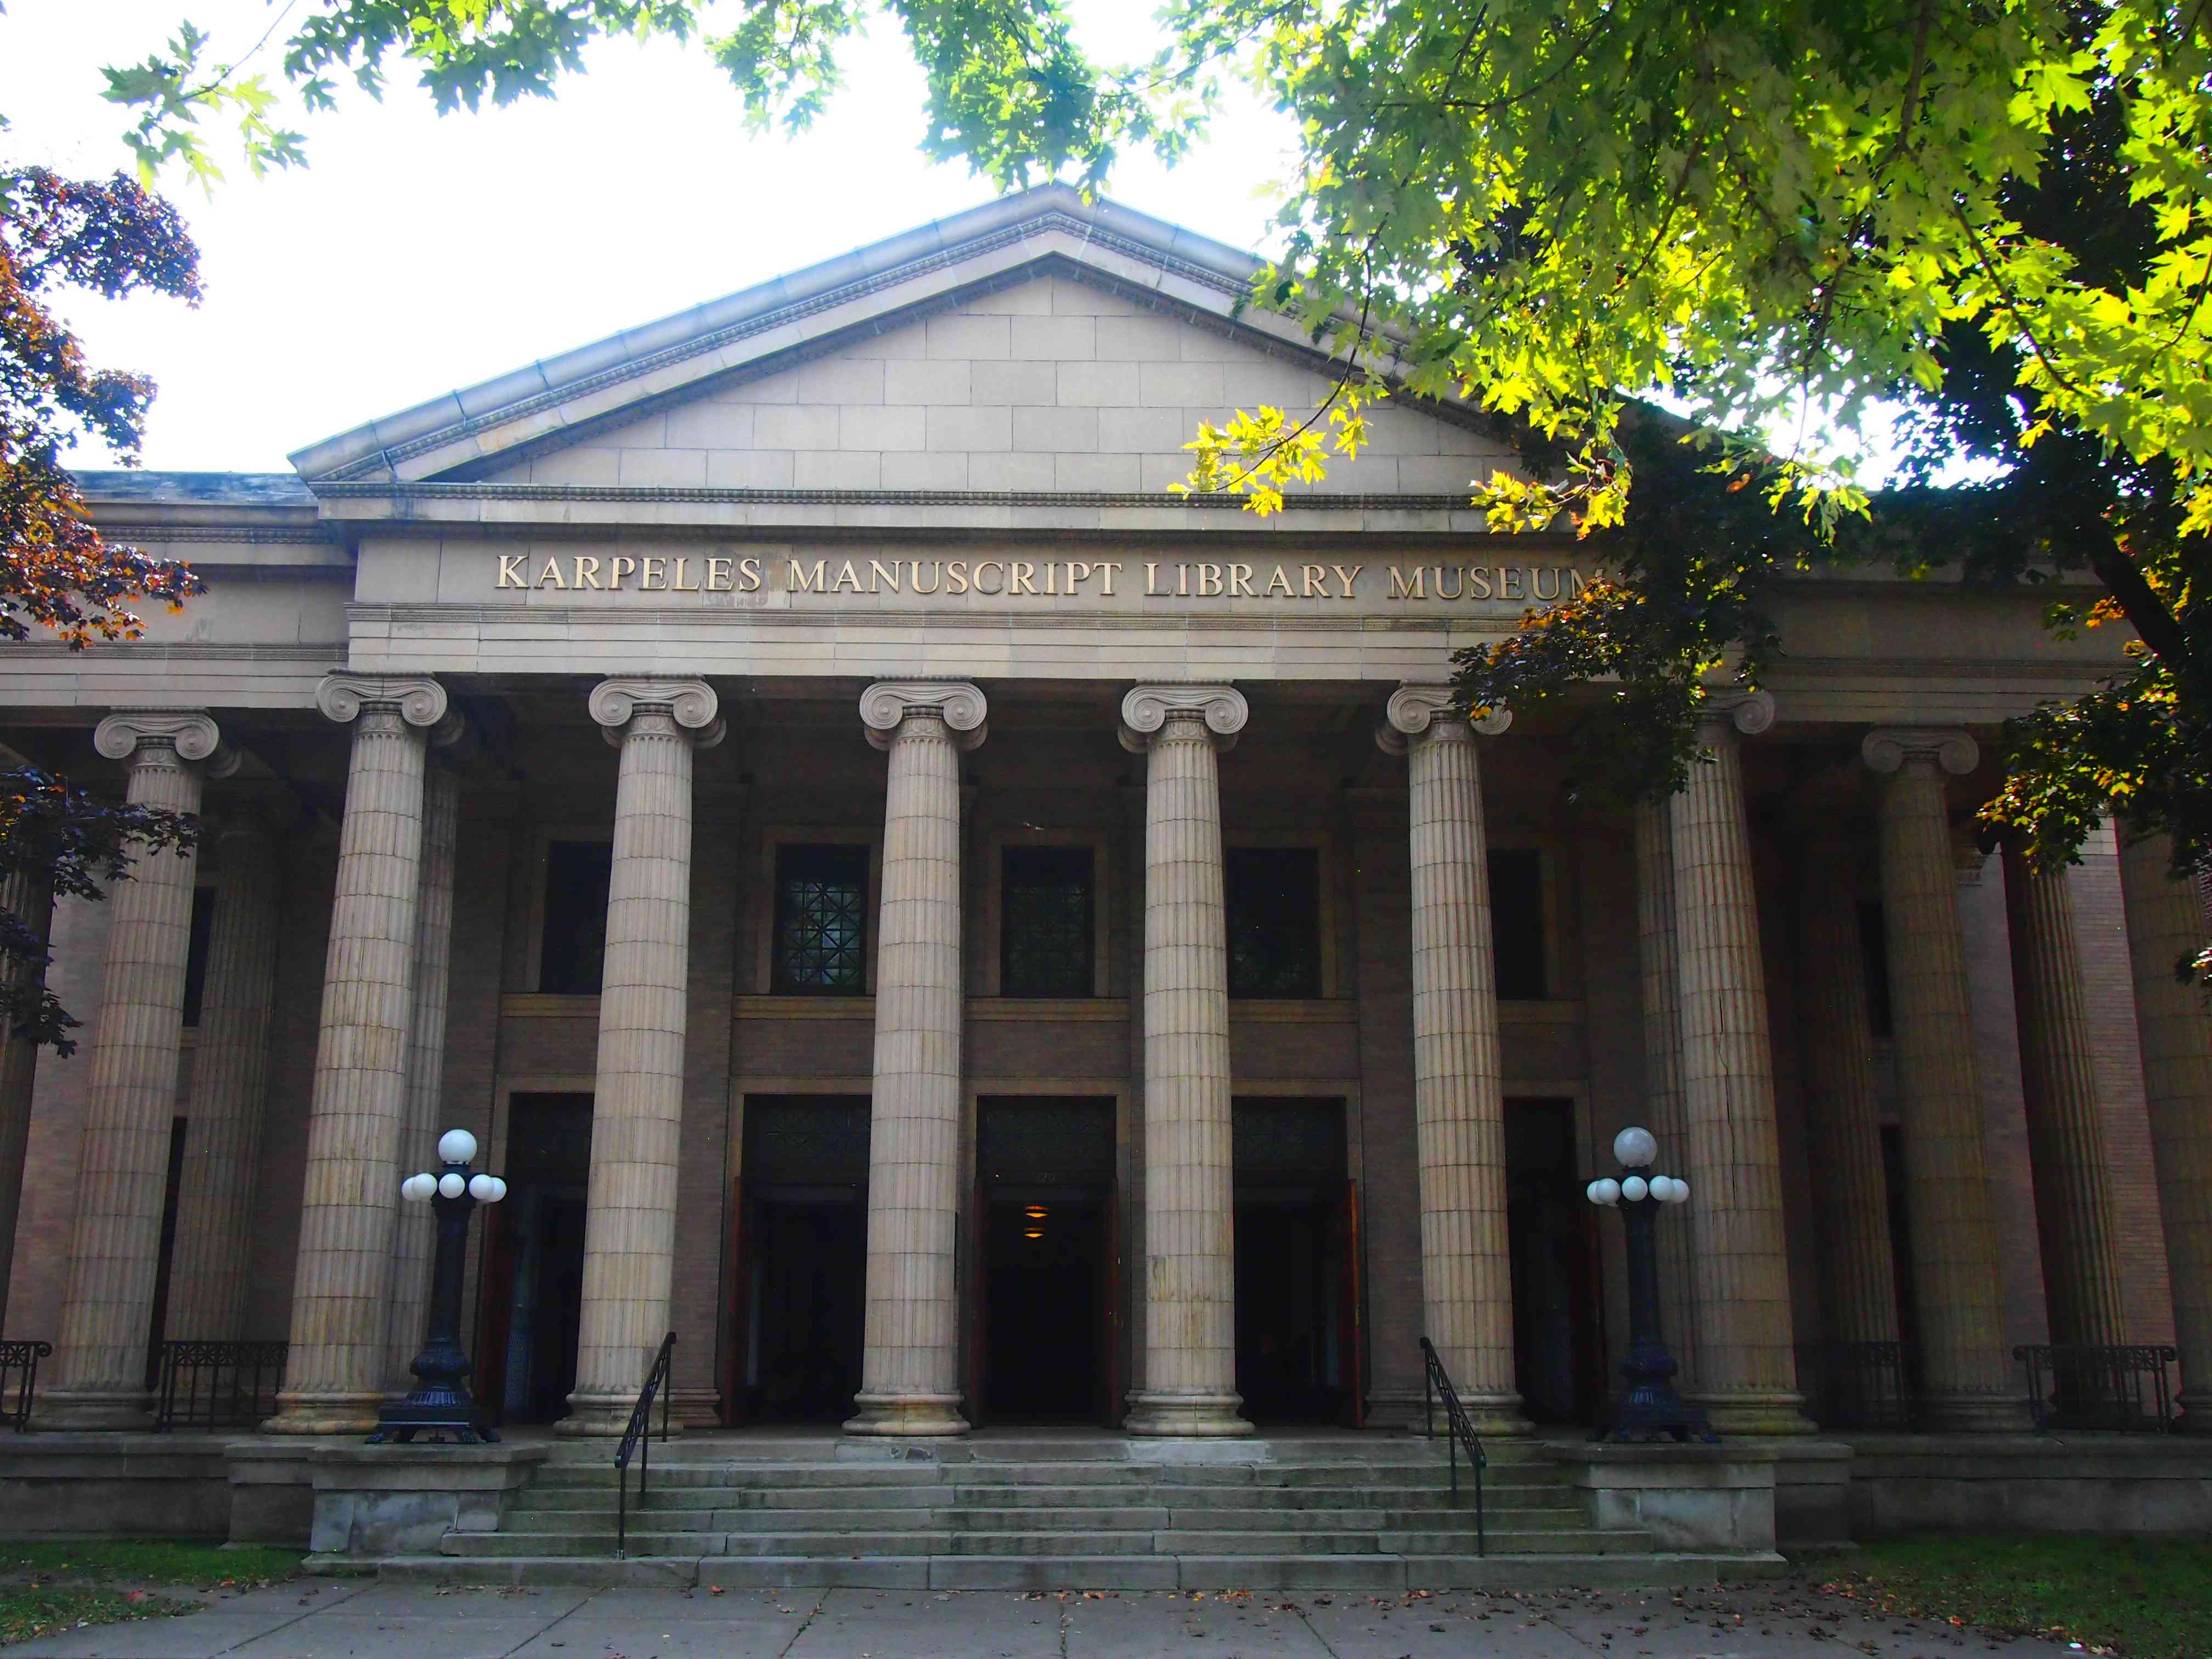 neo-classical building with columns and pointed roof and green leaves in foreground